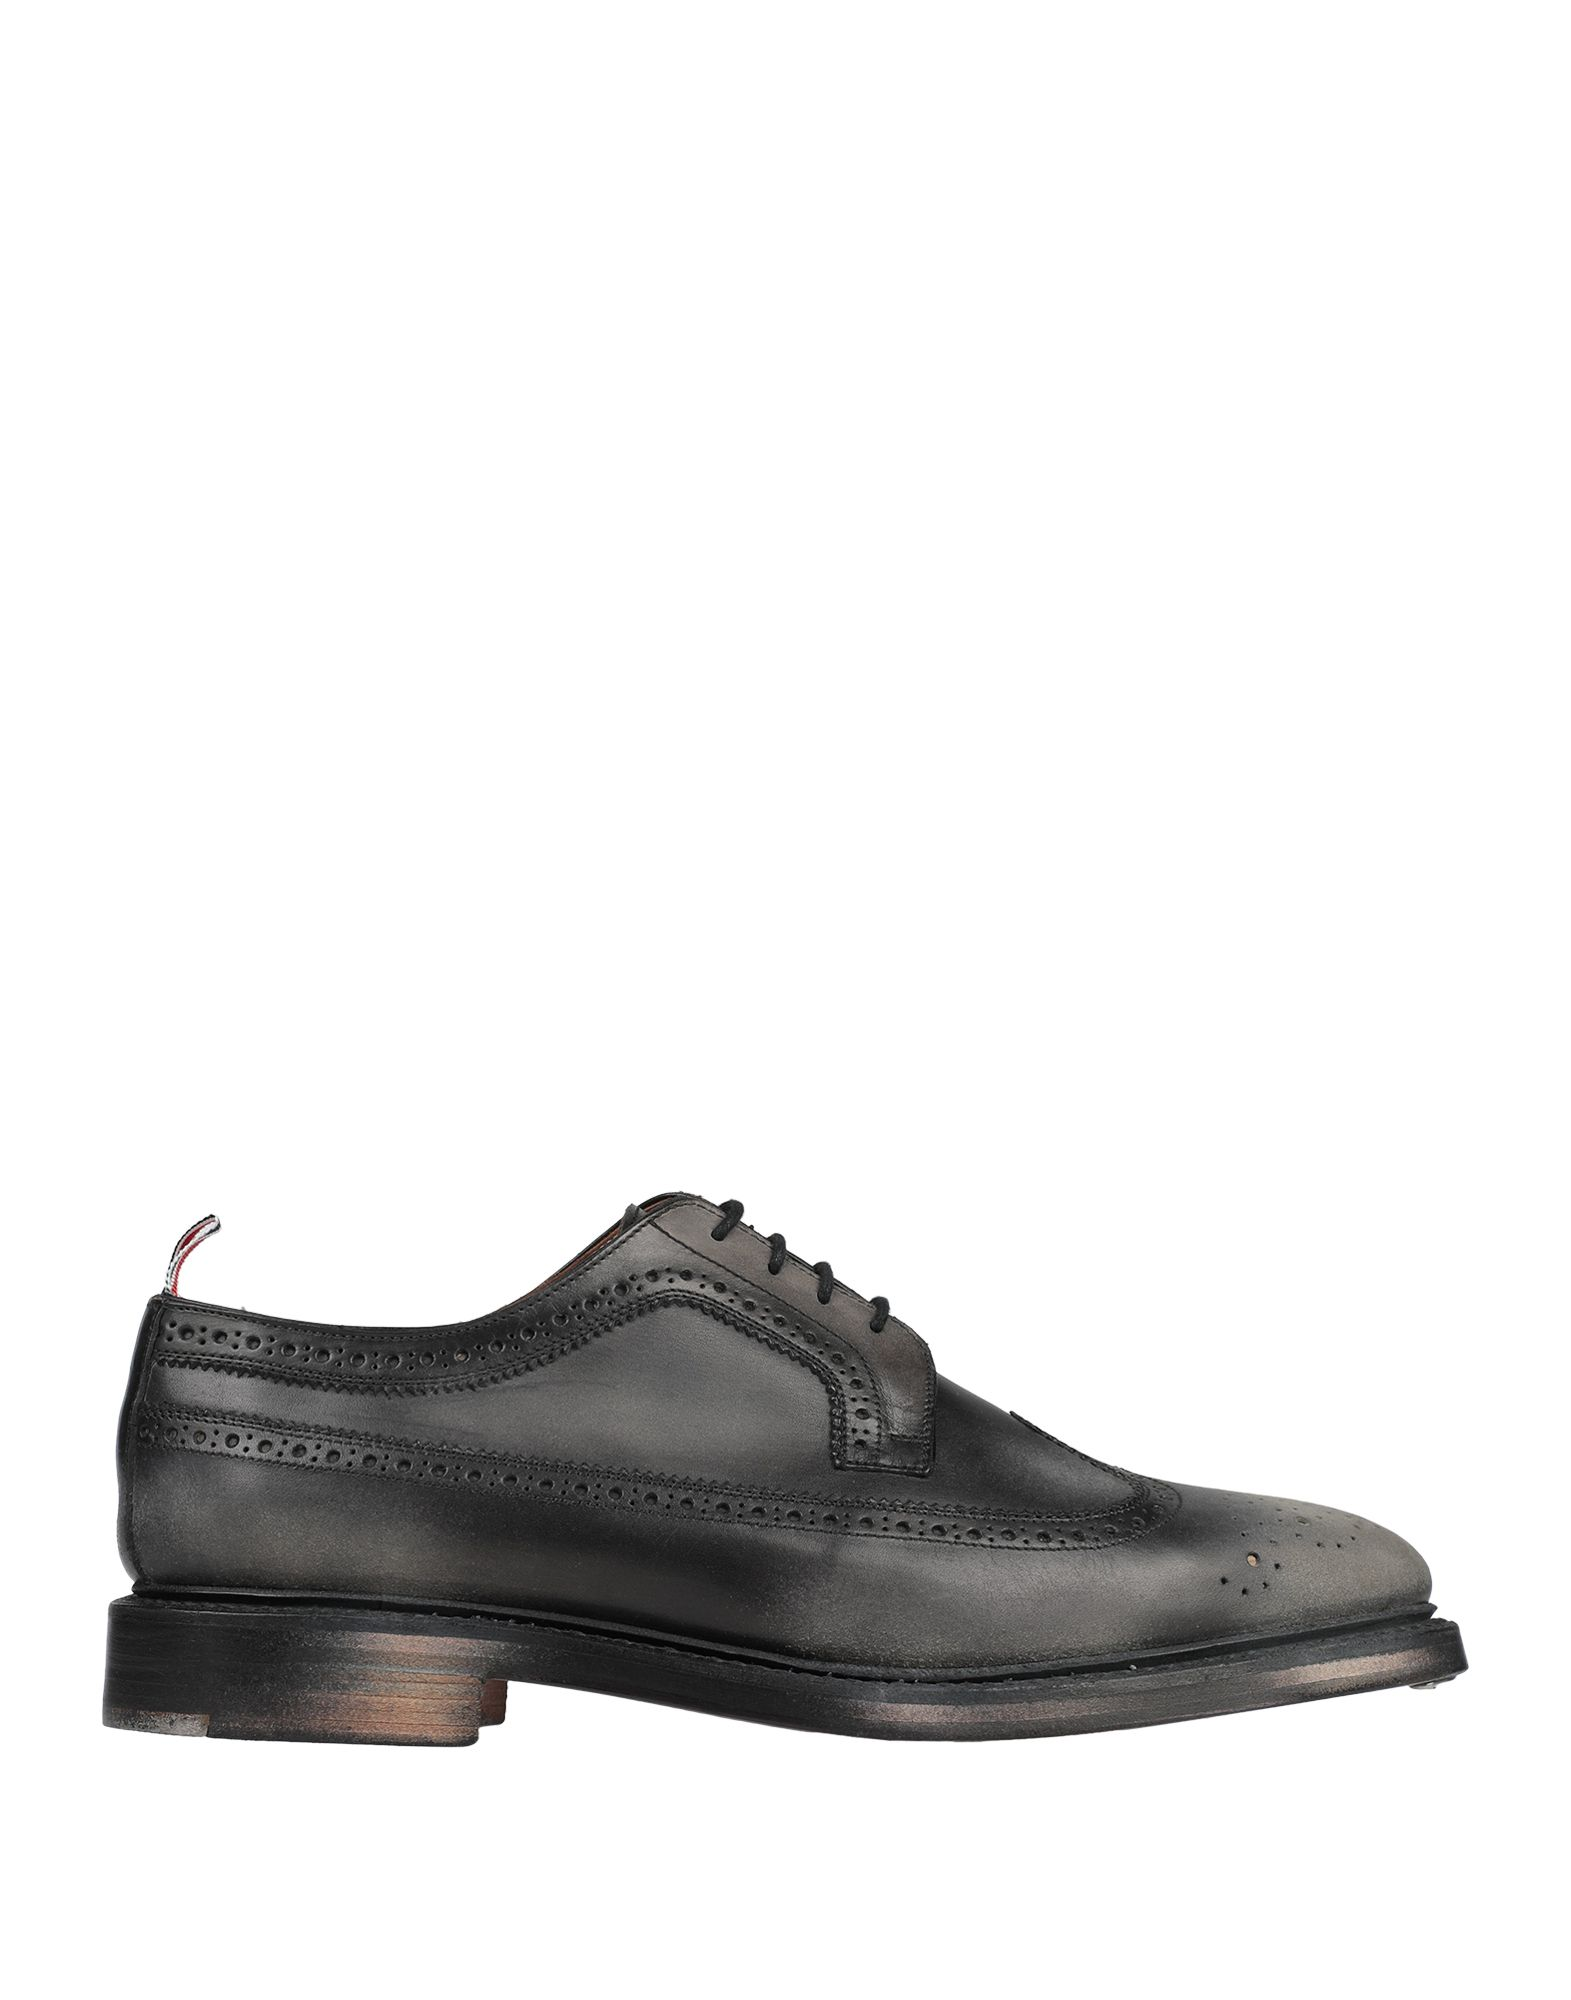 THOM BROWNE Lace-up shoes. logo, solid color, round toeline, square heel, leather lining, leather sole, contains non-textile parts of animal origin. Soft Leather